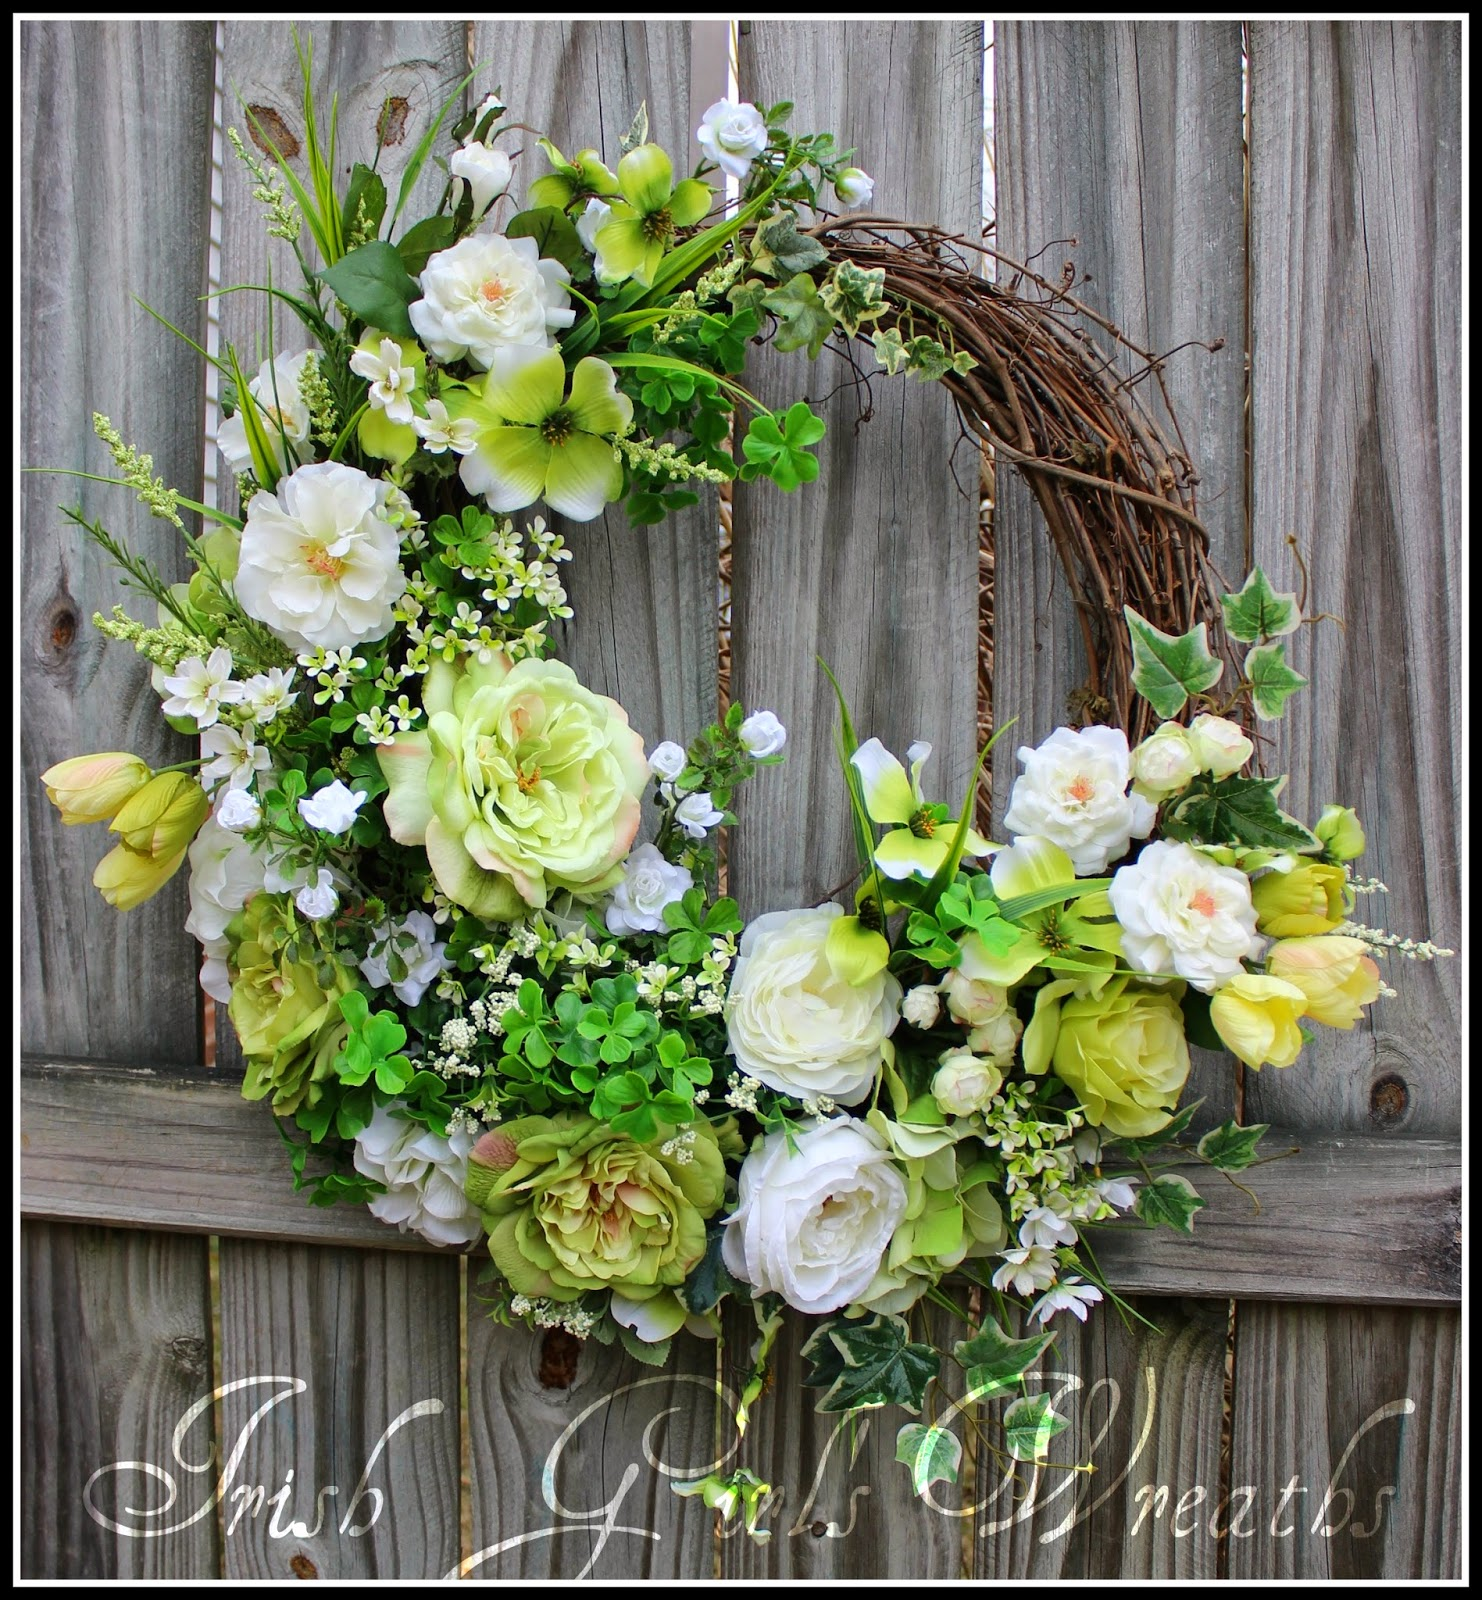 St Patricks Spring Rose Garden Wreath, large, green white, tulips, Dogwood, shamrocks, Cottage